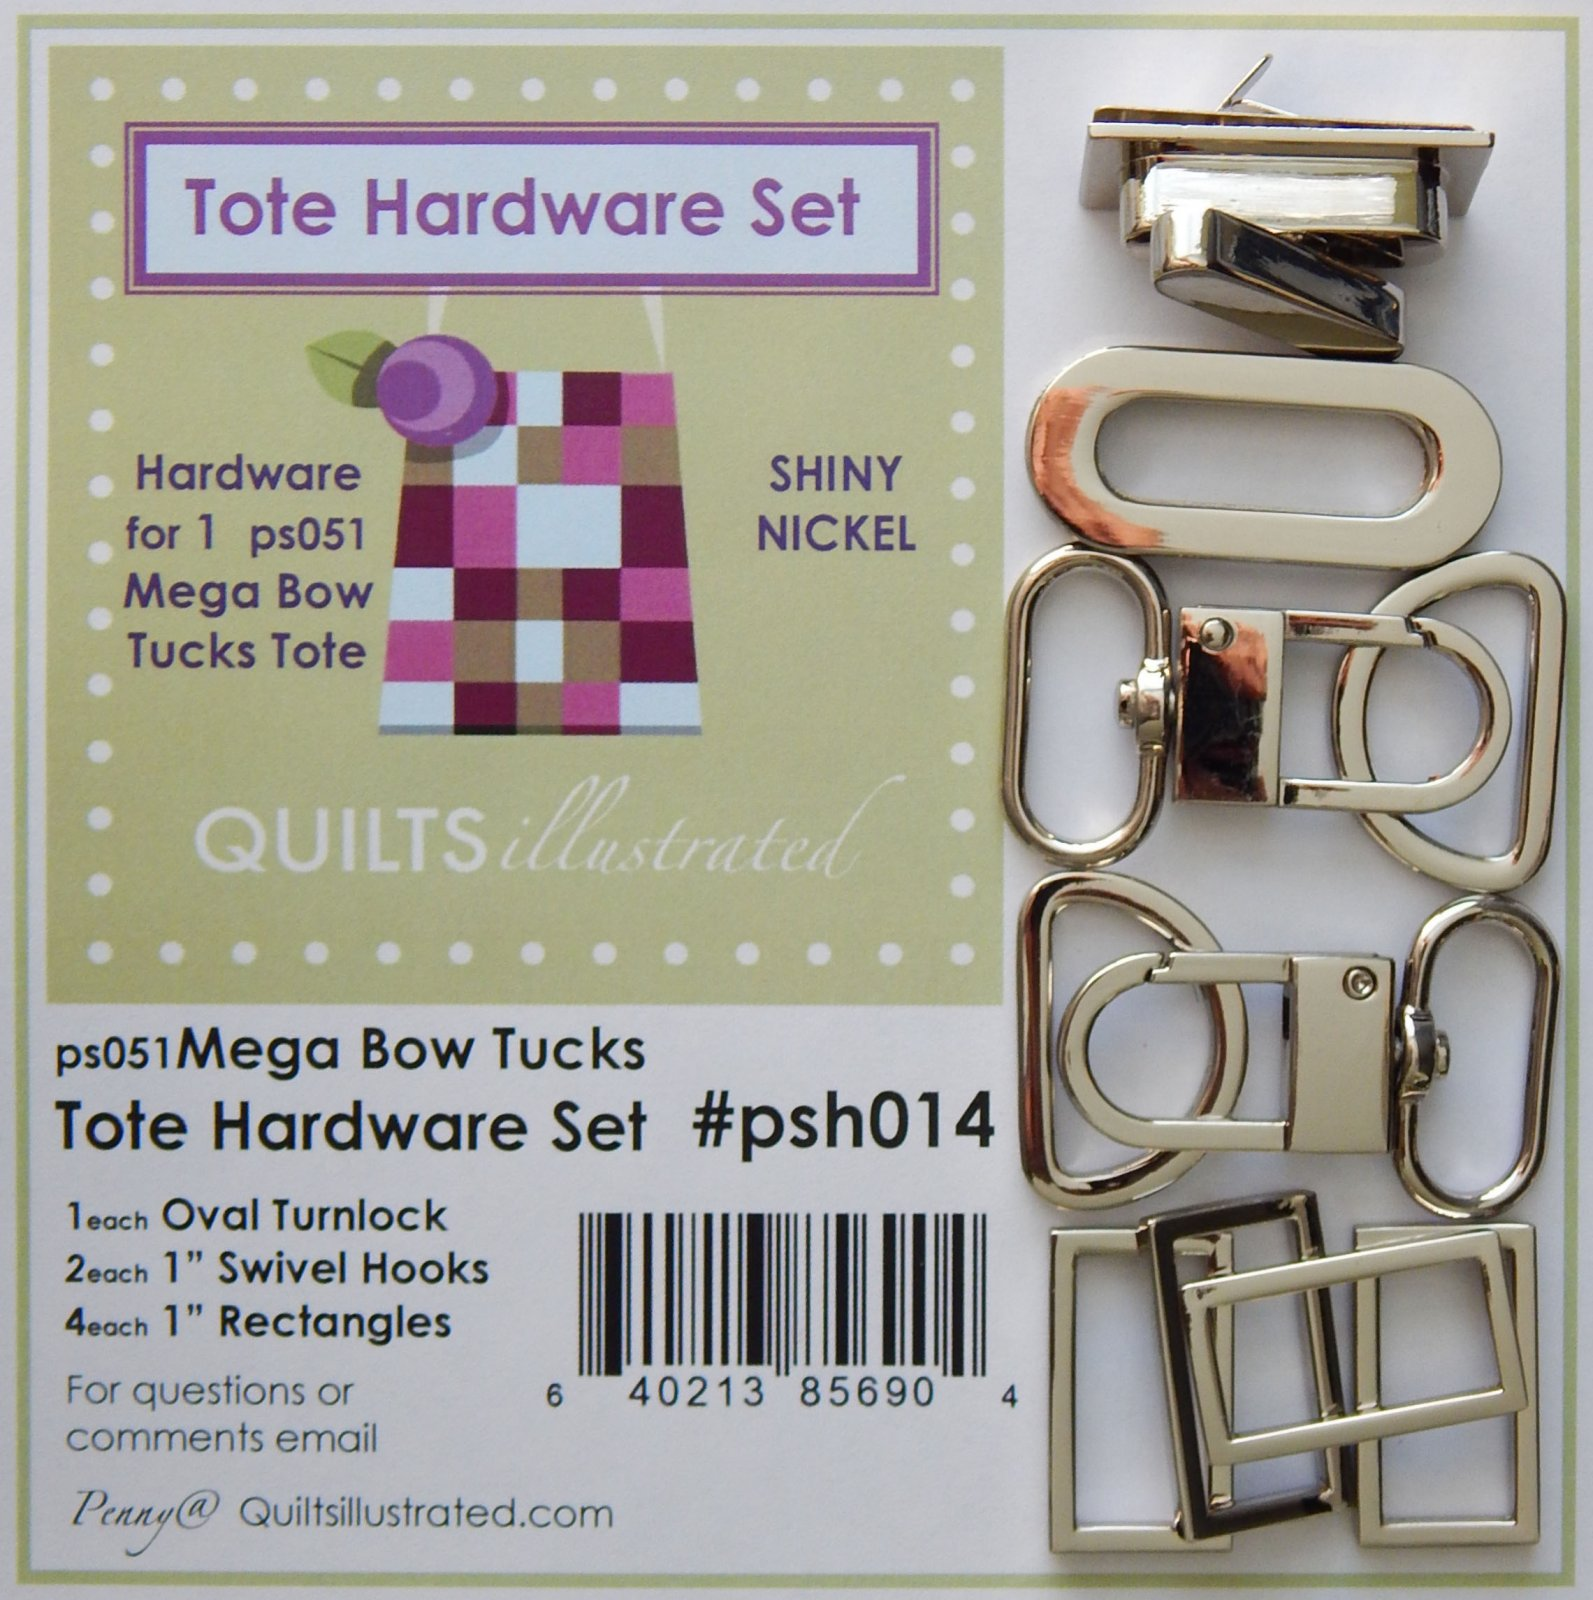 Tote Hardware Set- Shiny Nickel (psh014)